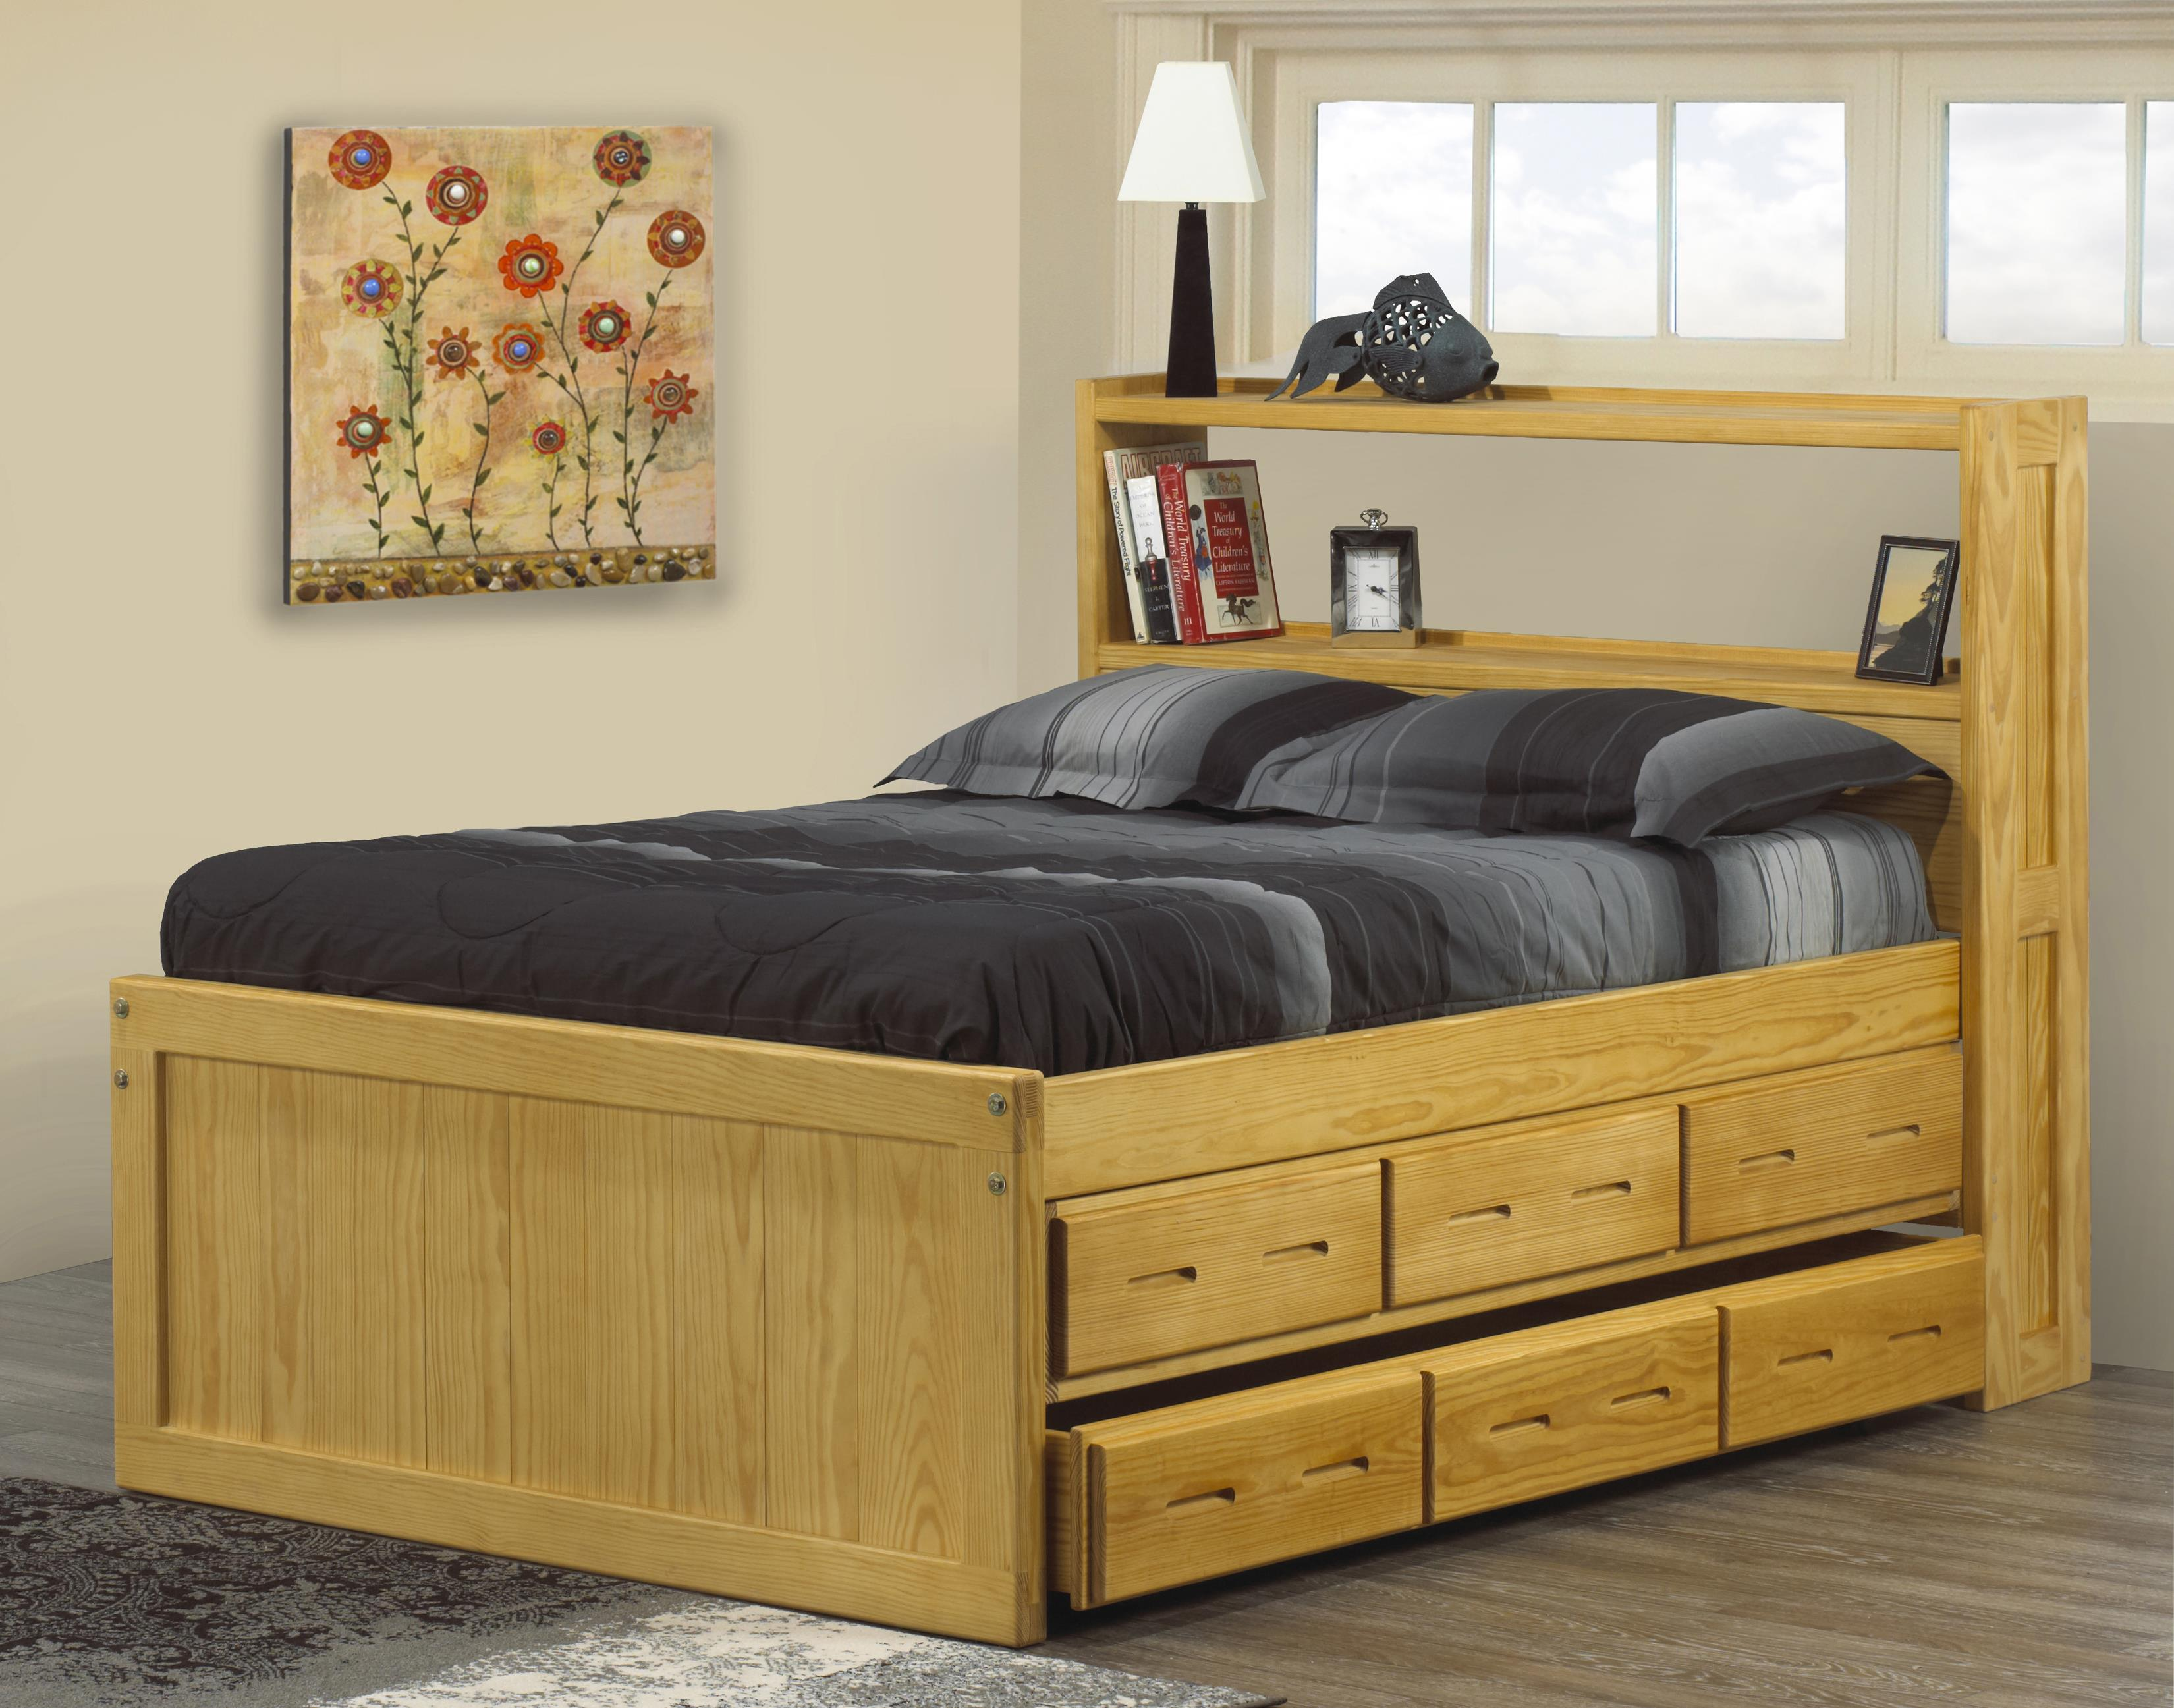 Crate Designs - Bedroom Twin Captain's Bookcase Bed by Crate Designs at Reid's Furniture